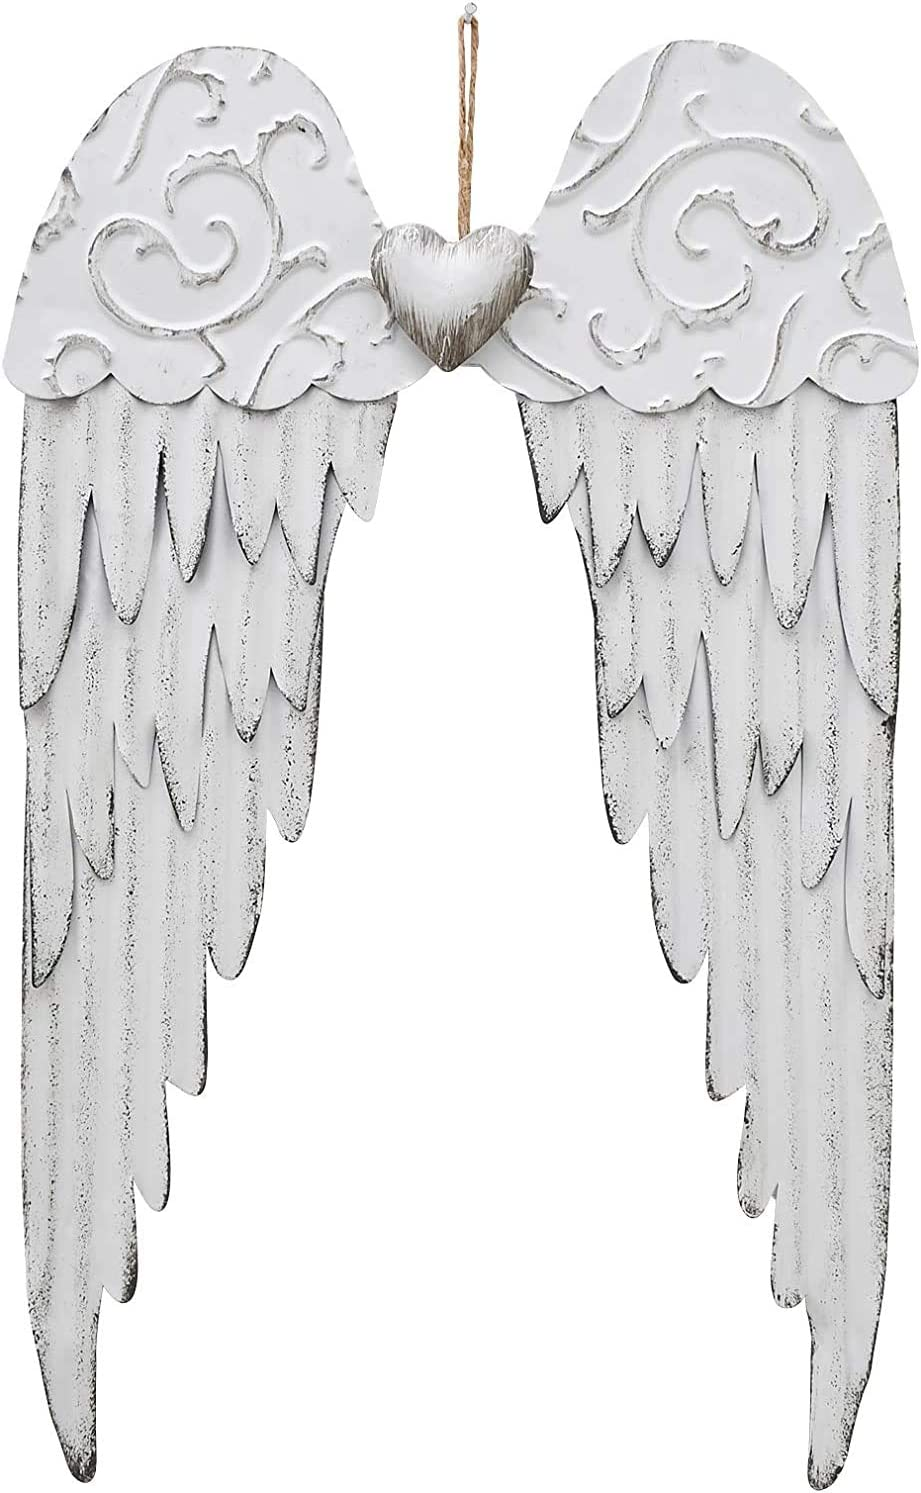 Hanging Metal Angel Wings with Heart Wall Art Decor, Rustic Metal Angel Wall Sculpture Antique Angel Home Wall Decoration - (17''H)